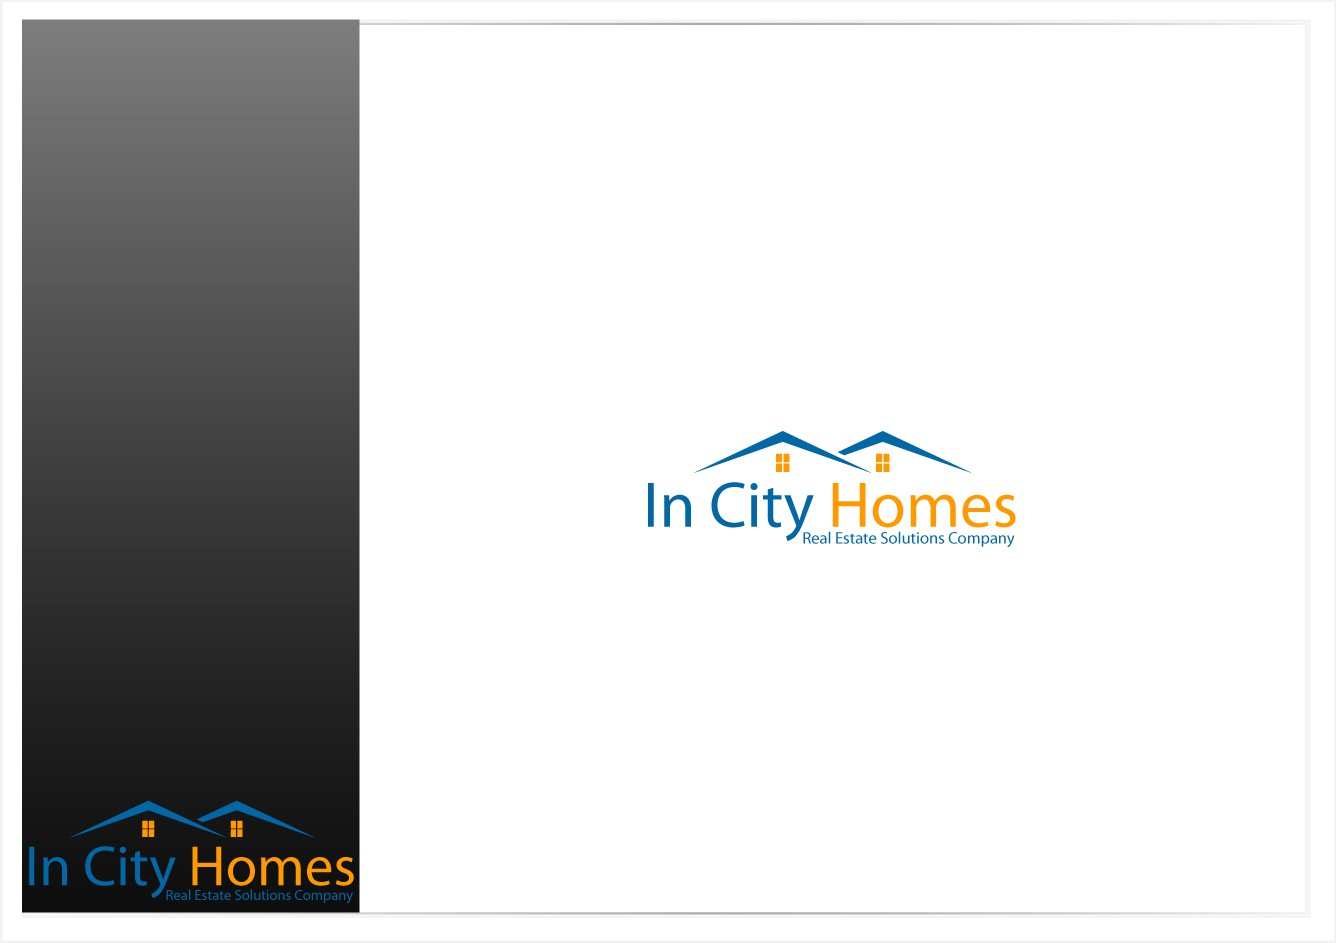 New logo wanted for In City Homes